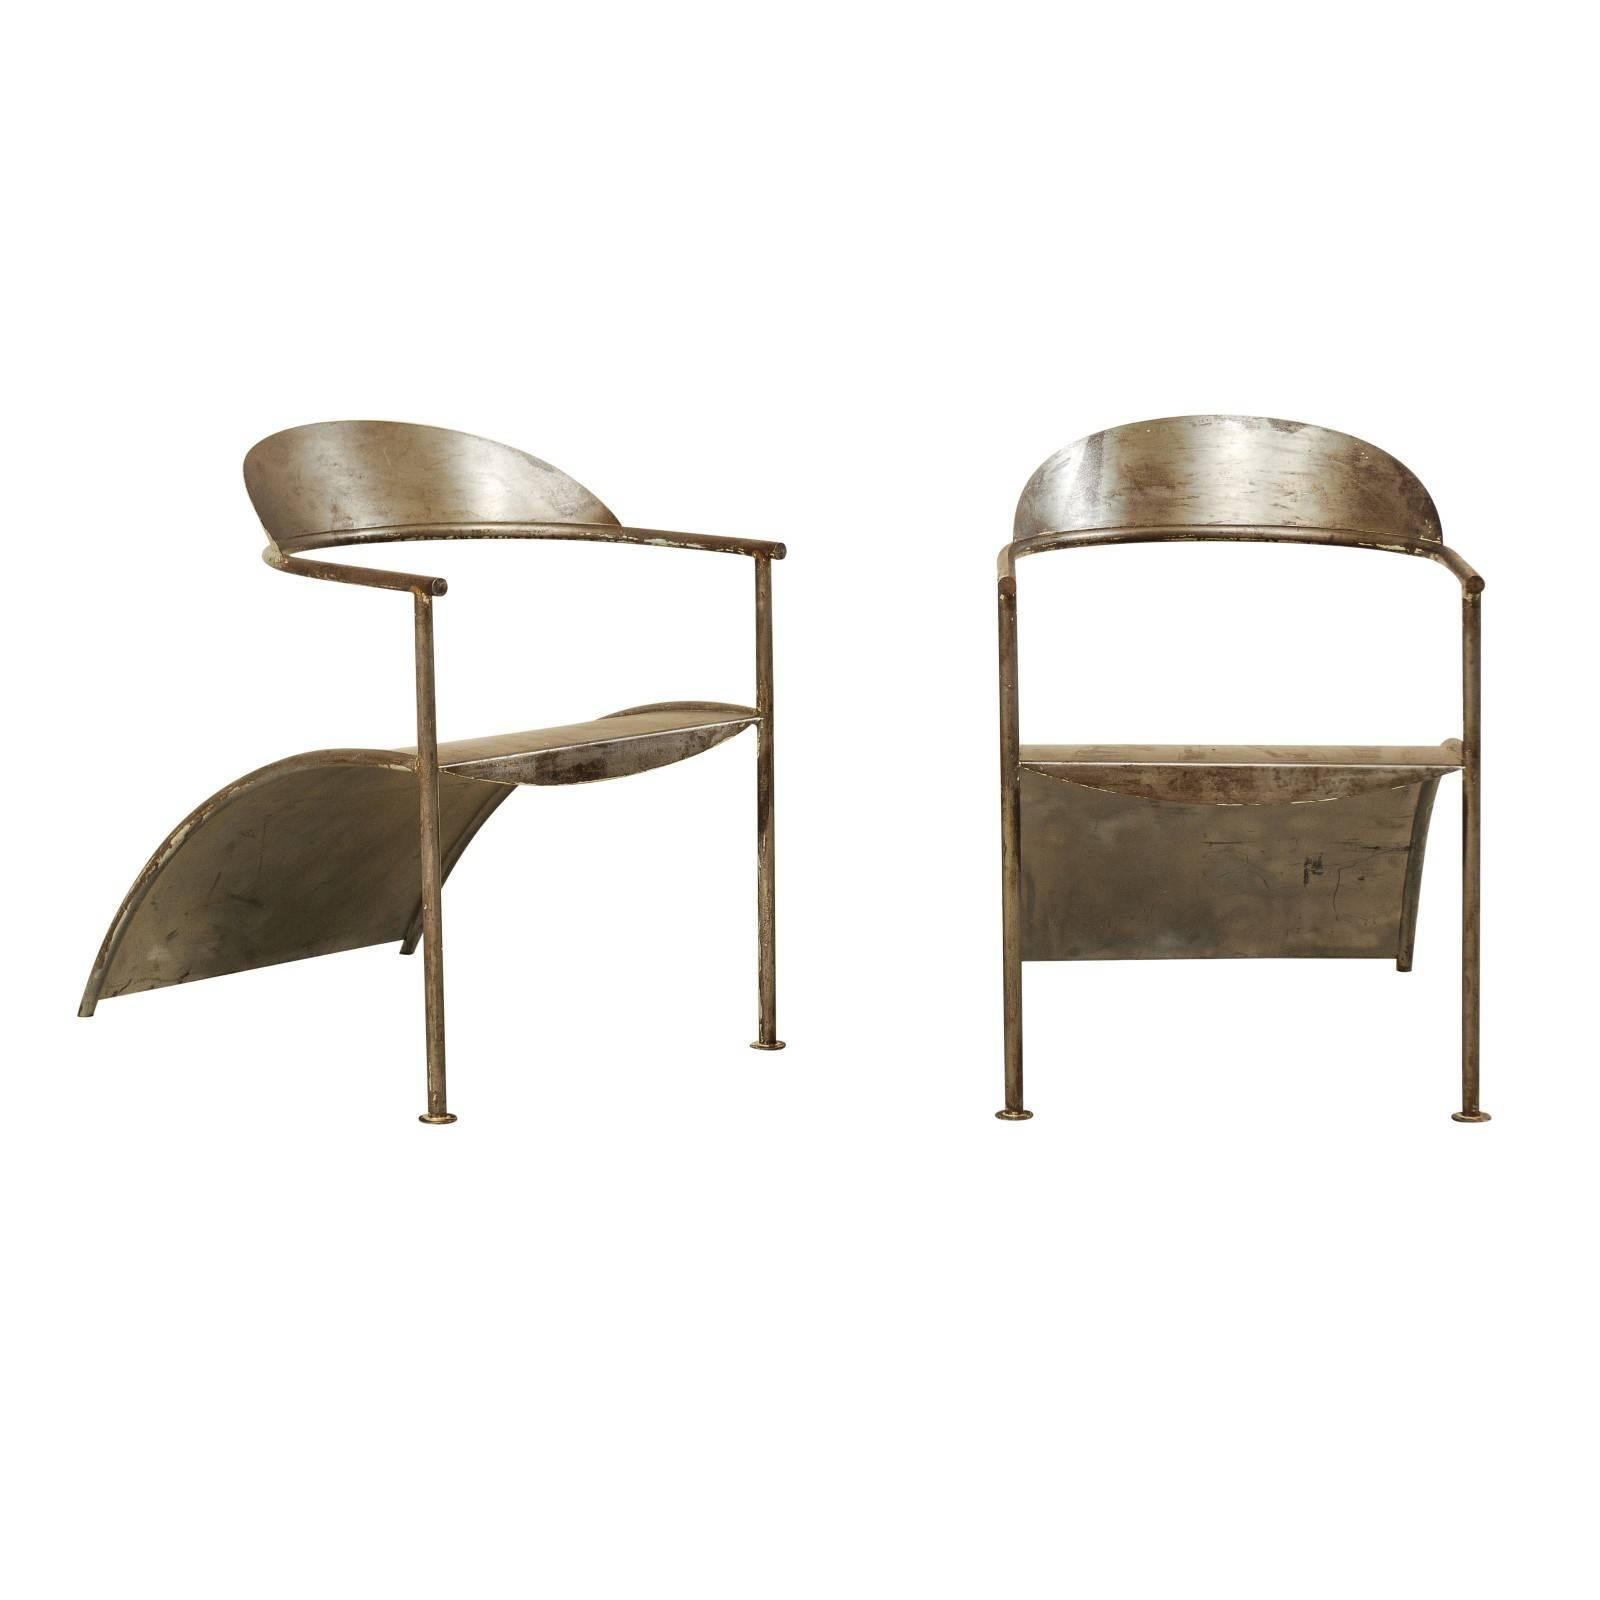 Pair of French Sleek & Modern Metal Arm Chairs by Designer Philippe Starck